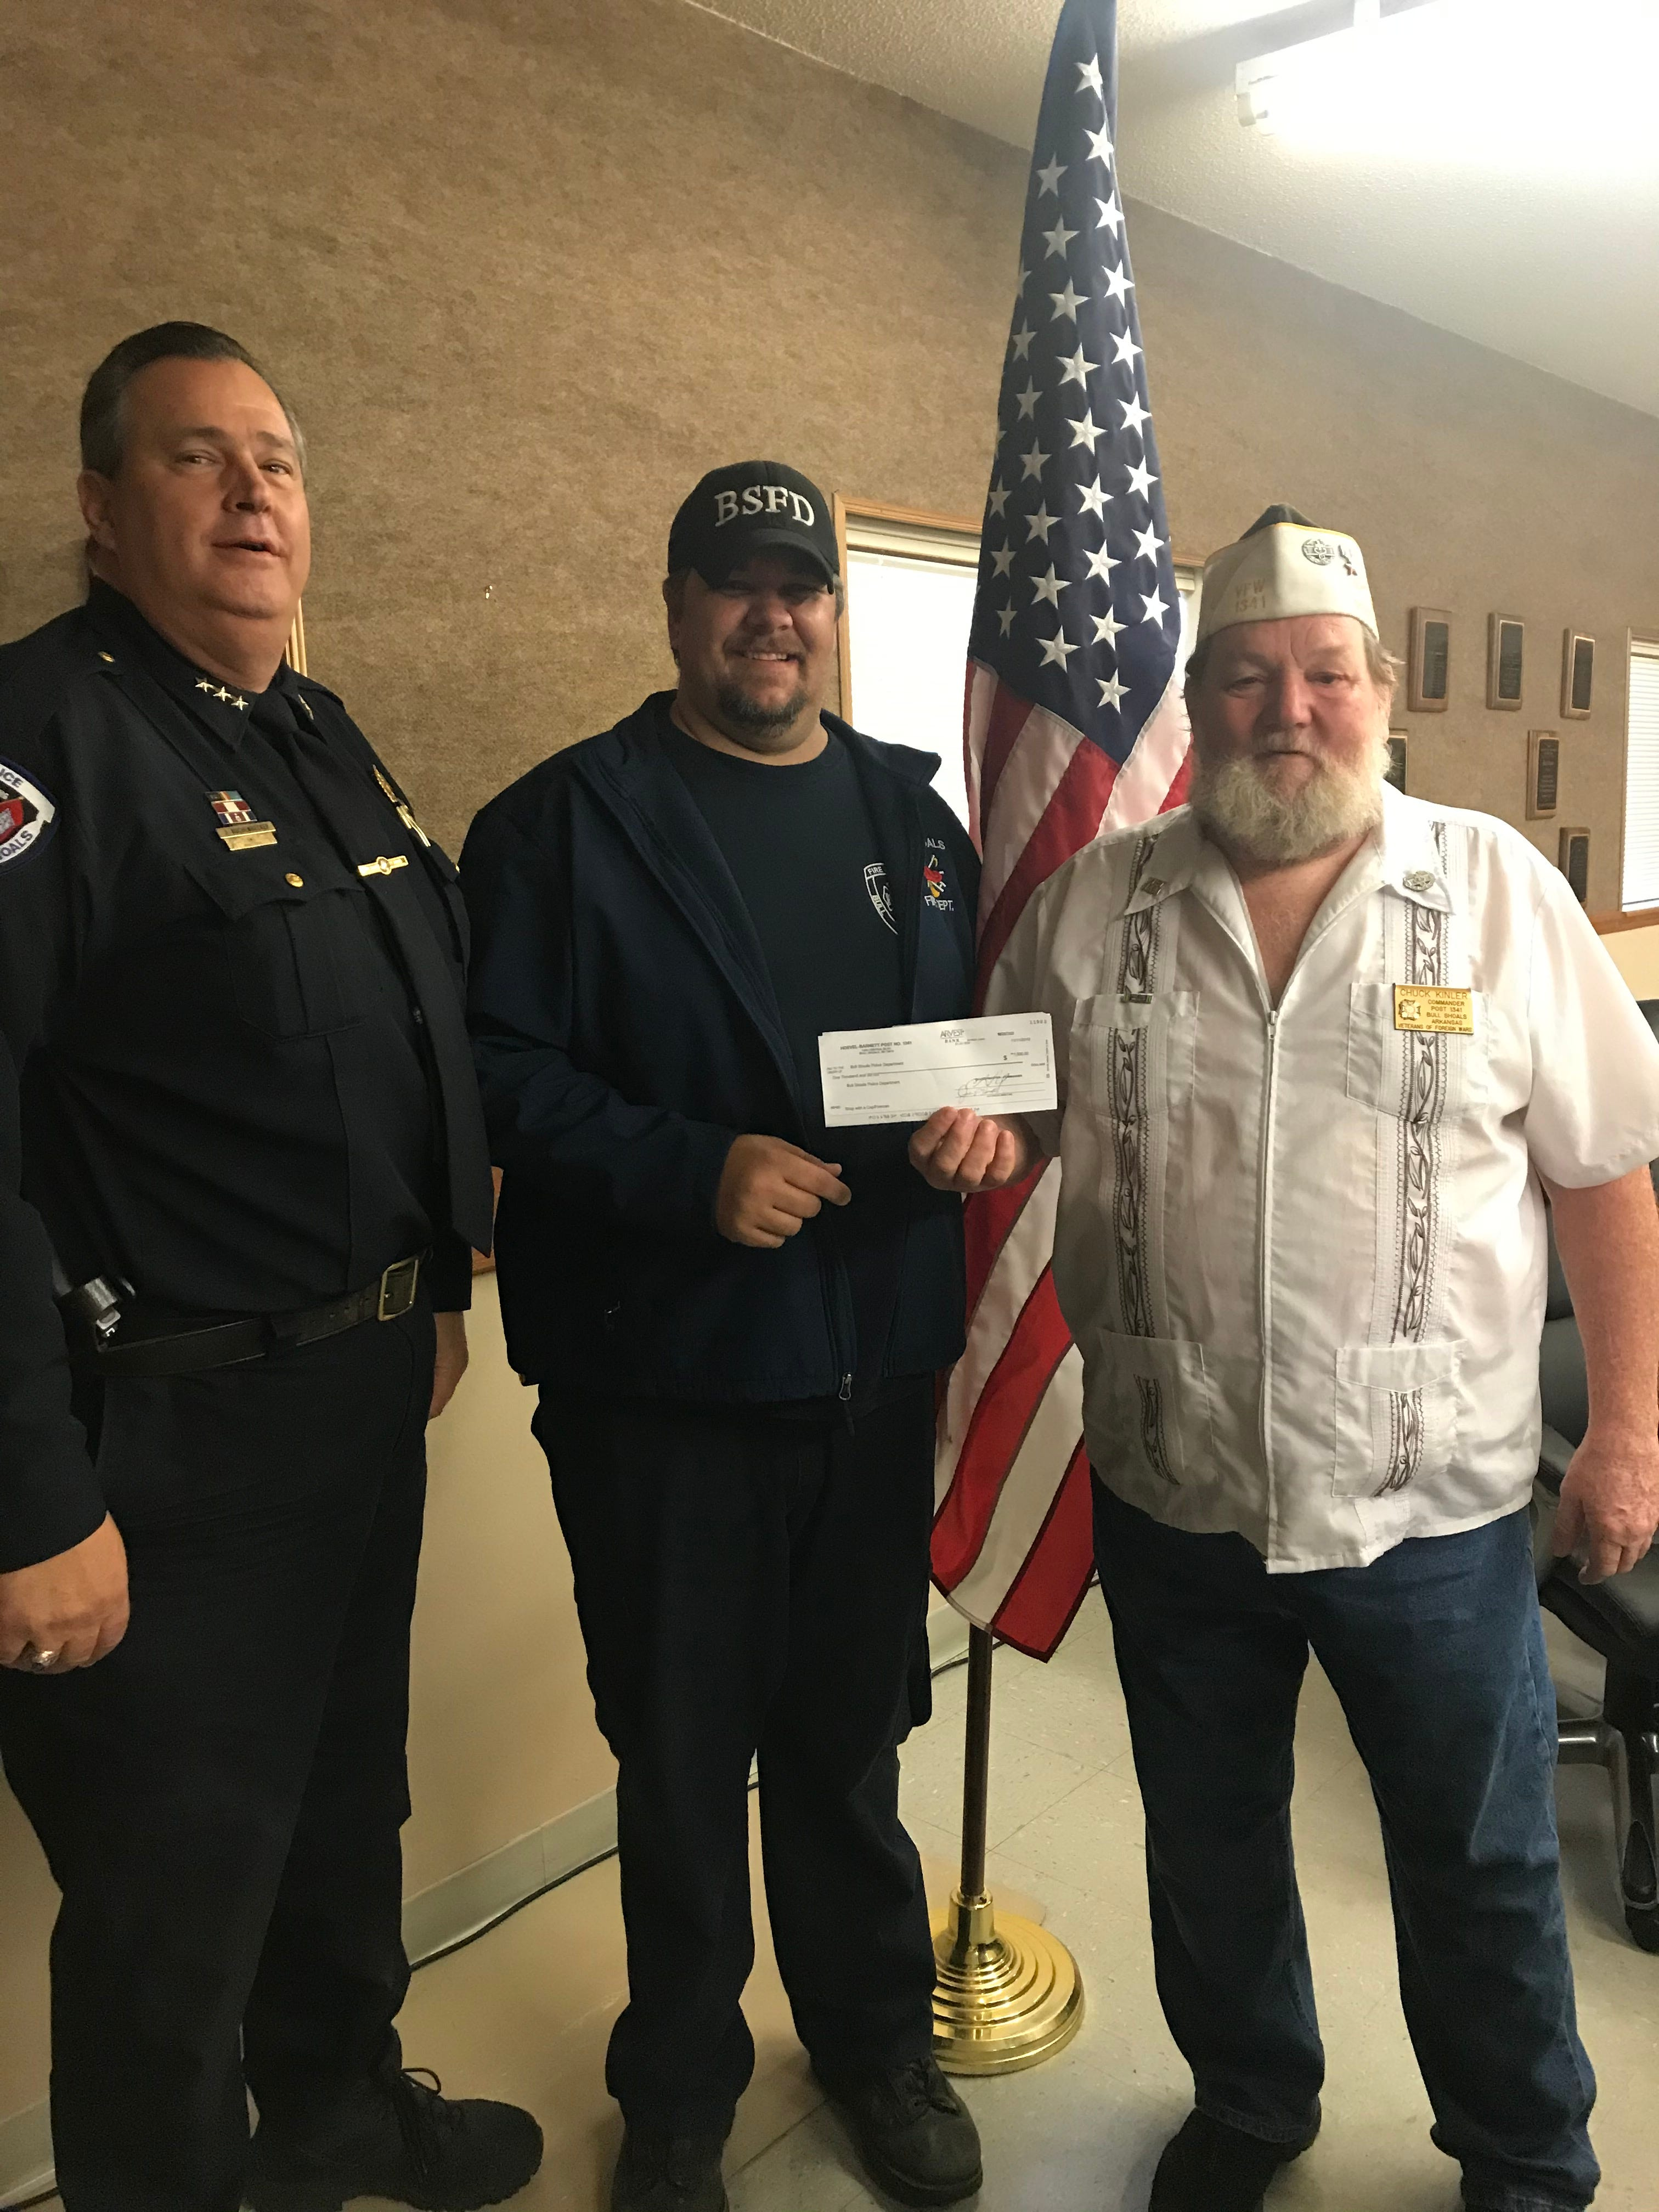 The Hoevel-Barnett VFW Post 1341 of Bull Shoals recently made a donation to support Bull Shoal's fourth annual Shop with a Cop & Fireman event. This year's event will be held on Saturday, Dec. 14 and will kickoff with a pizza luncheon at the Bull Shoals Police Station at 1:30 p.m. Shop with a Cop & Fireman has become a local staple during the holiday season in Bull Shoals and has assisted many families and children who need assistance during this time of year. The event is 100 percent funded through the generous support of local citizens, businesses and organizations like the Bull Shoals VFW. Shown in the photo are (from left to right) Bull Shoals Police Chief Jim Kuchenbecker, Bull Shoals Fire Chief Brent Mitchell and VFW Post 1341 Commander Charles Kinler.